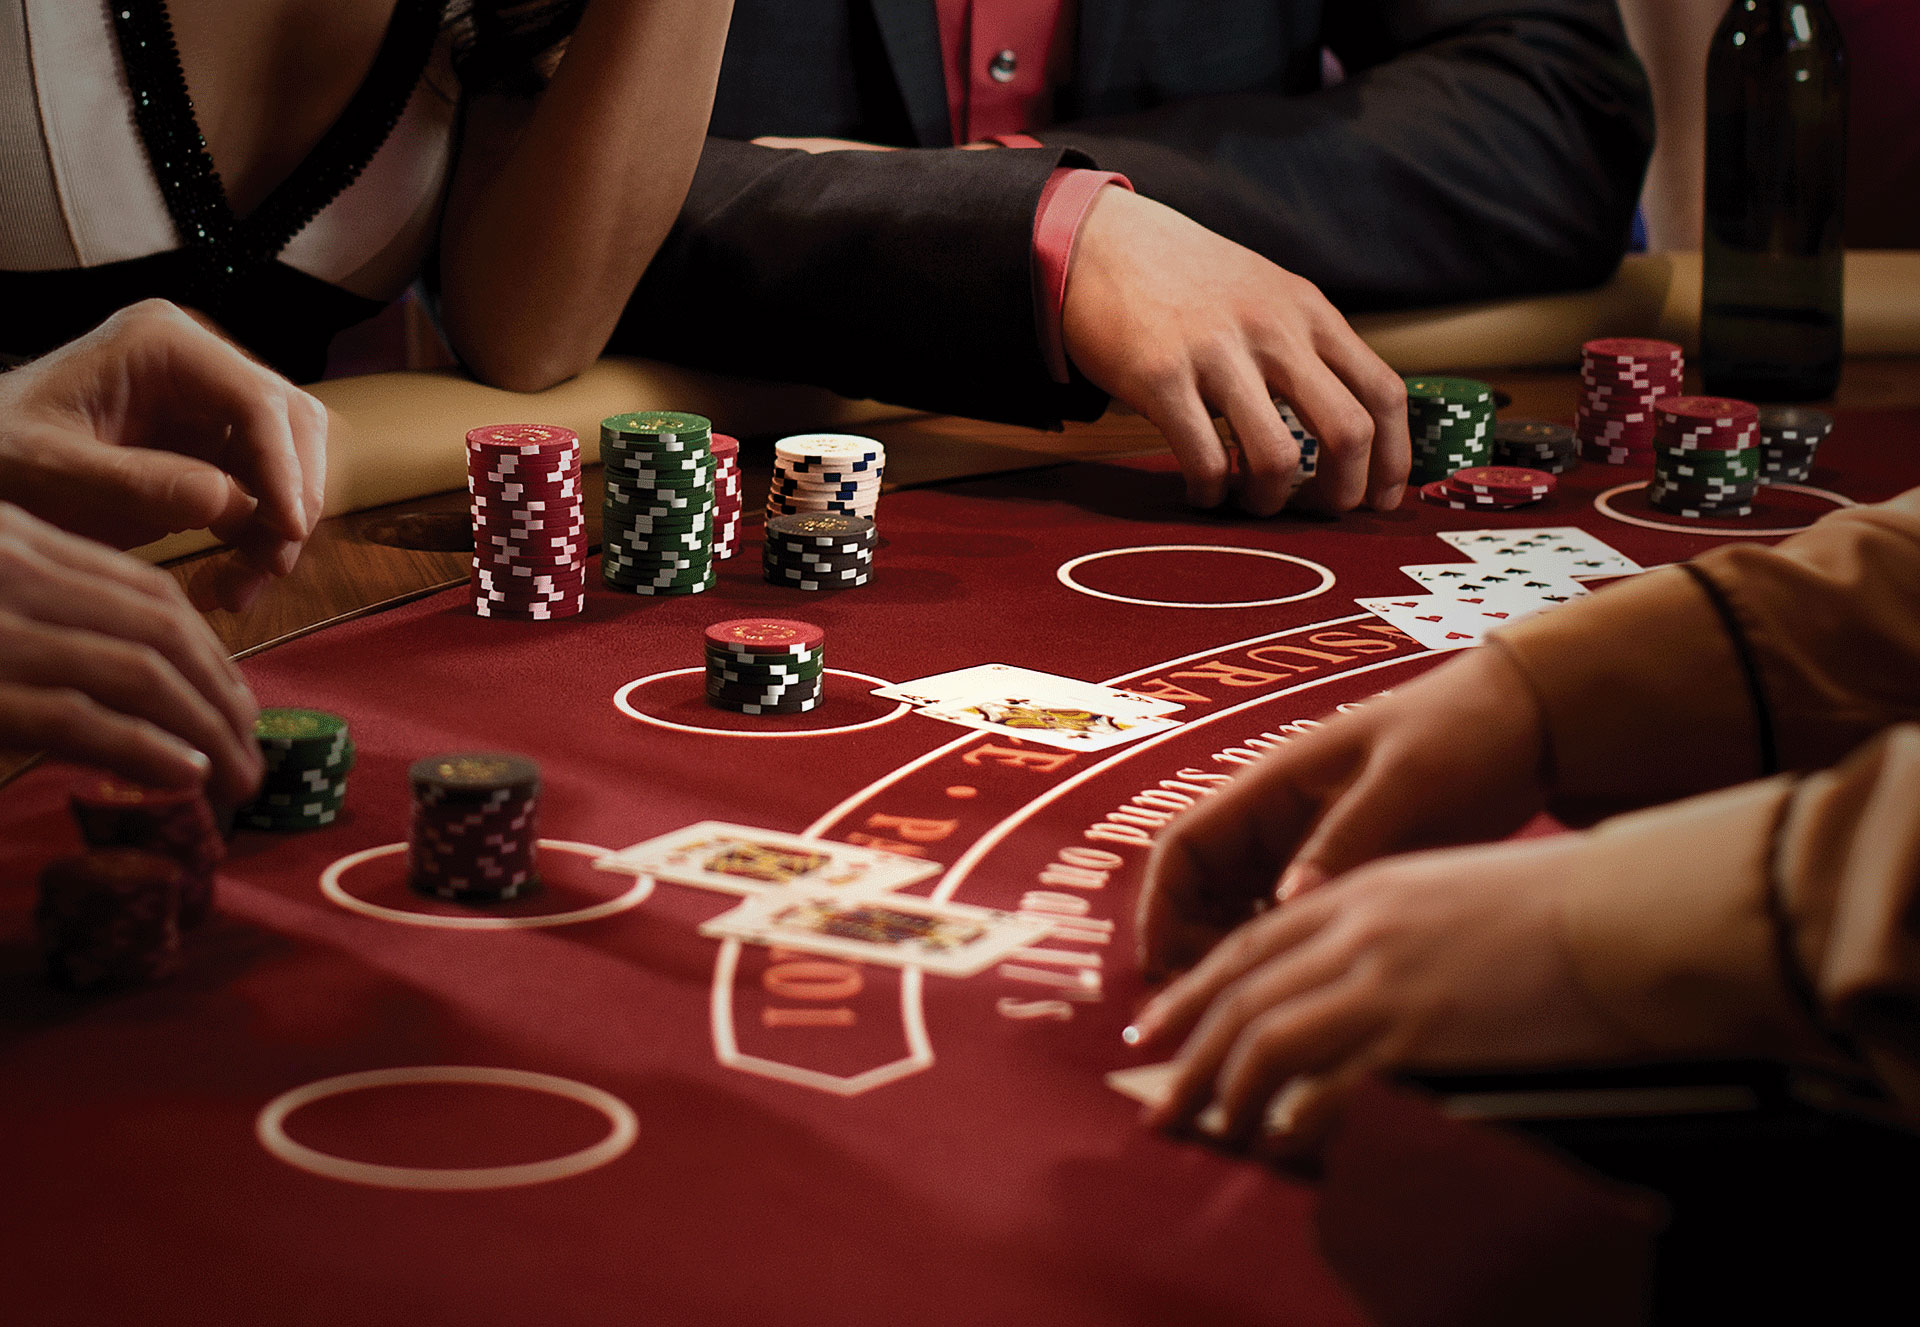 Playing games in online casinos